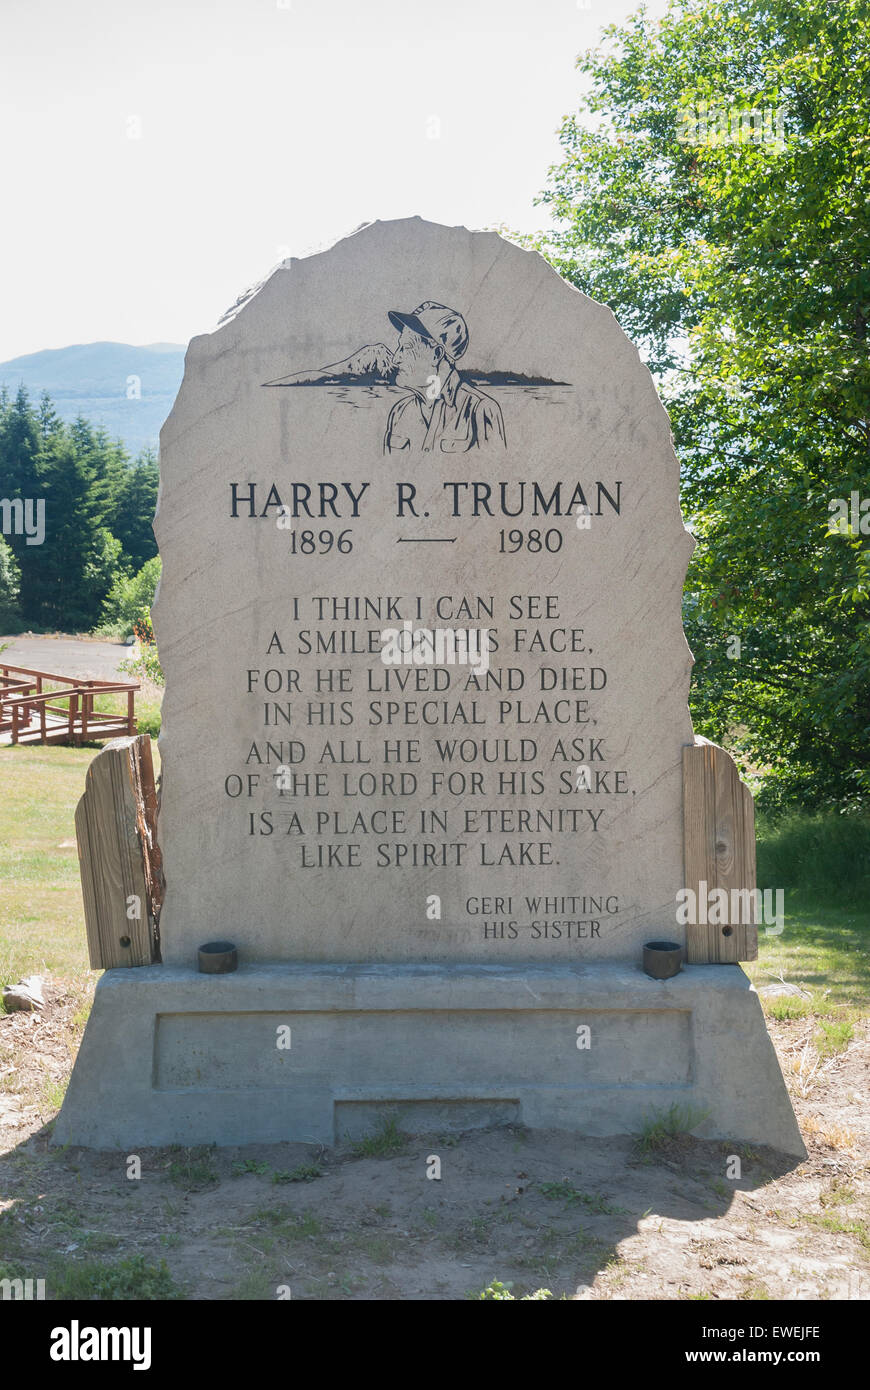 Harry R. Truman Memorial Marker at Hoffstadt Bluffs Visitor Center in Washington State. - Stock Image